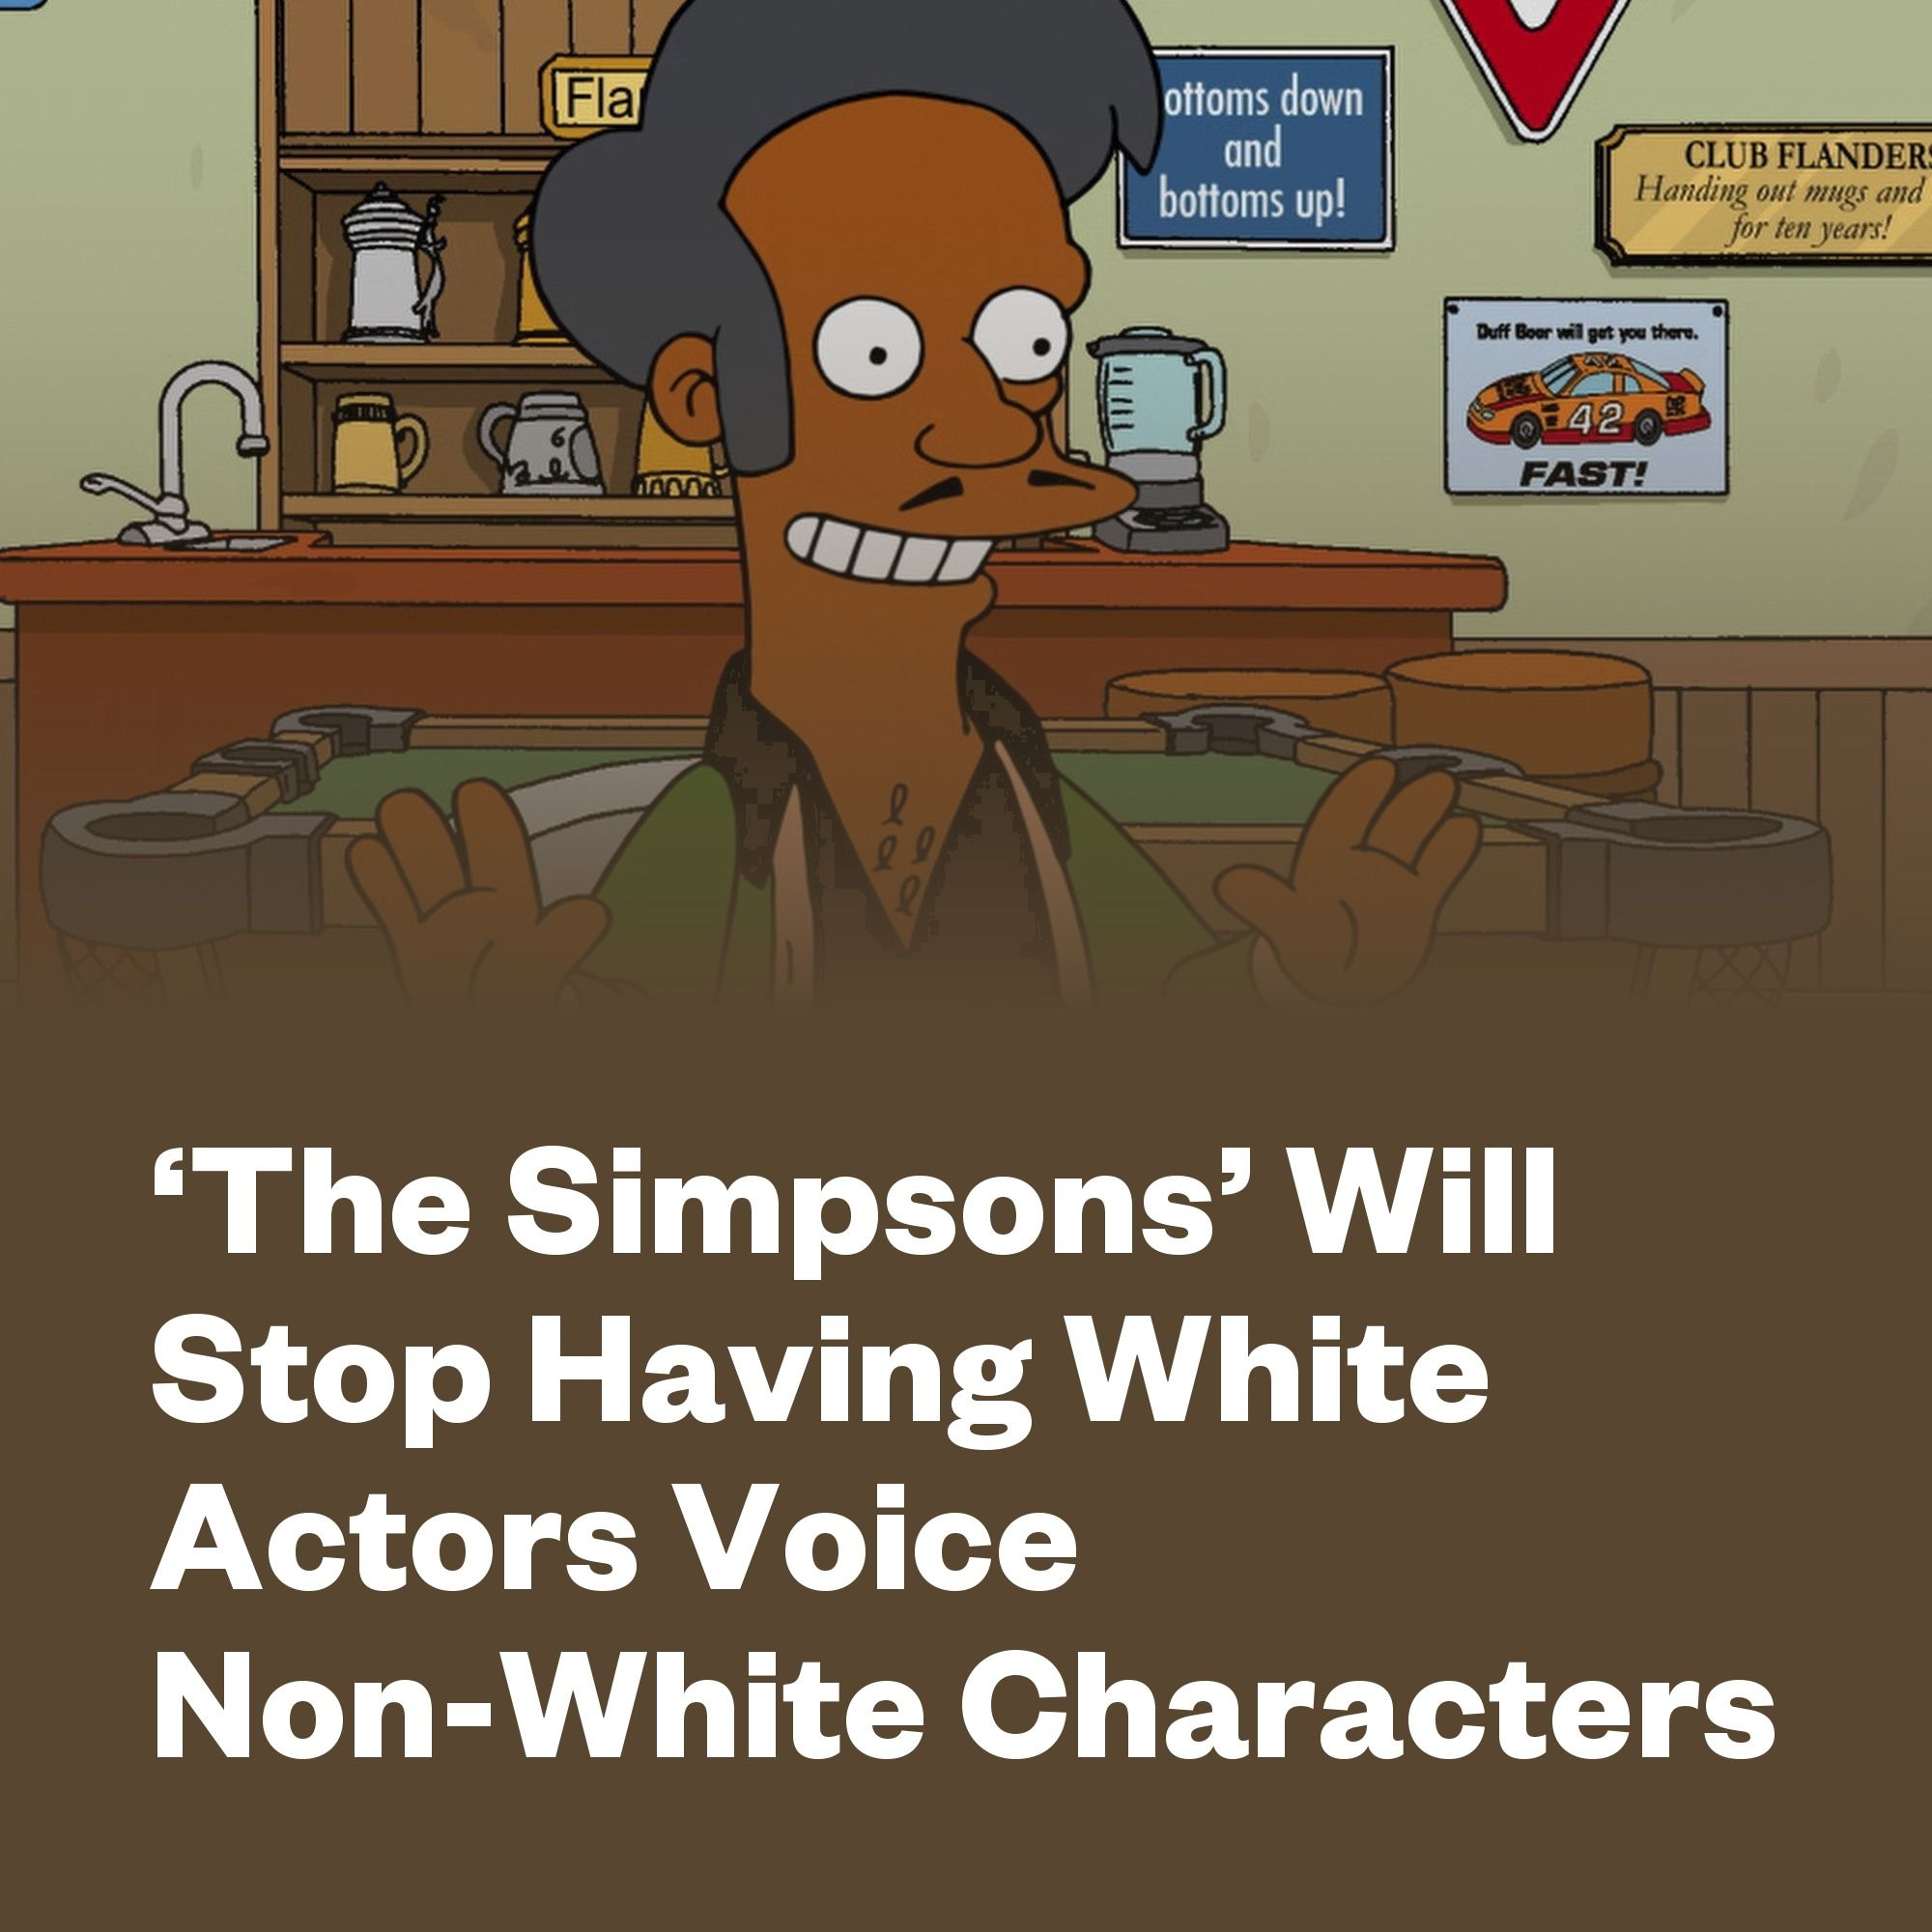 'The Simpsons' Will Stop Having White Actors Voice Non